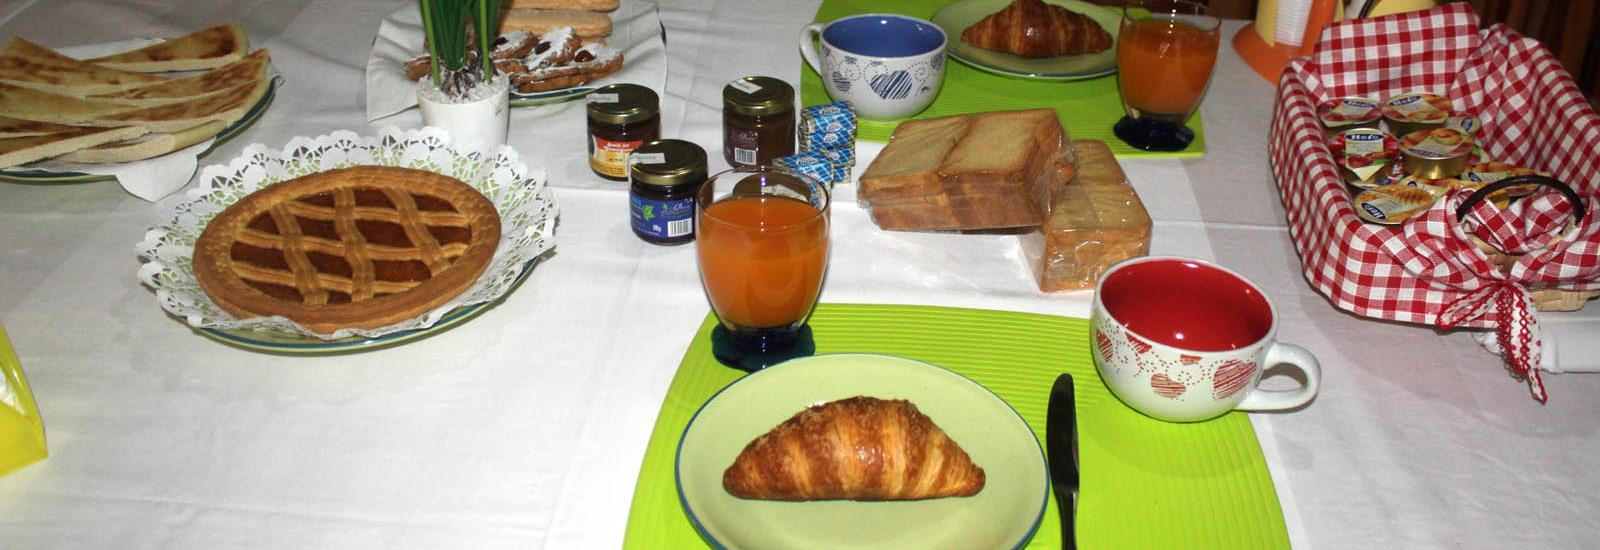 Colazione in Bed and Breakfast ad Orgosolo